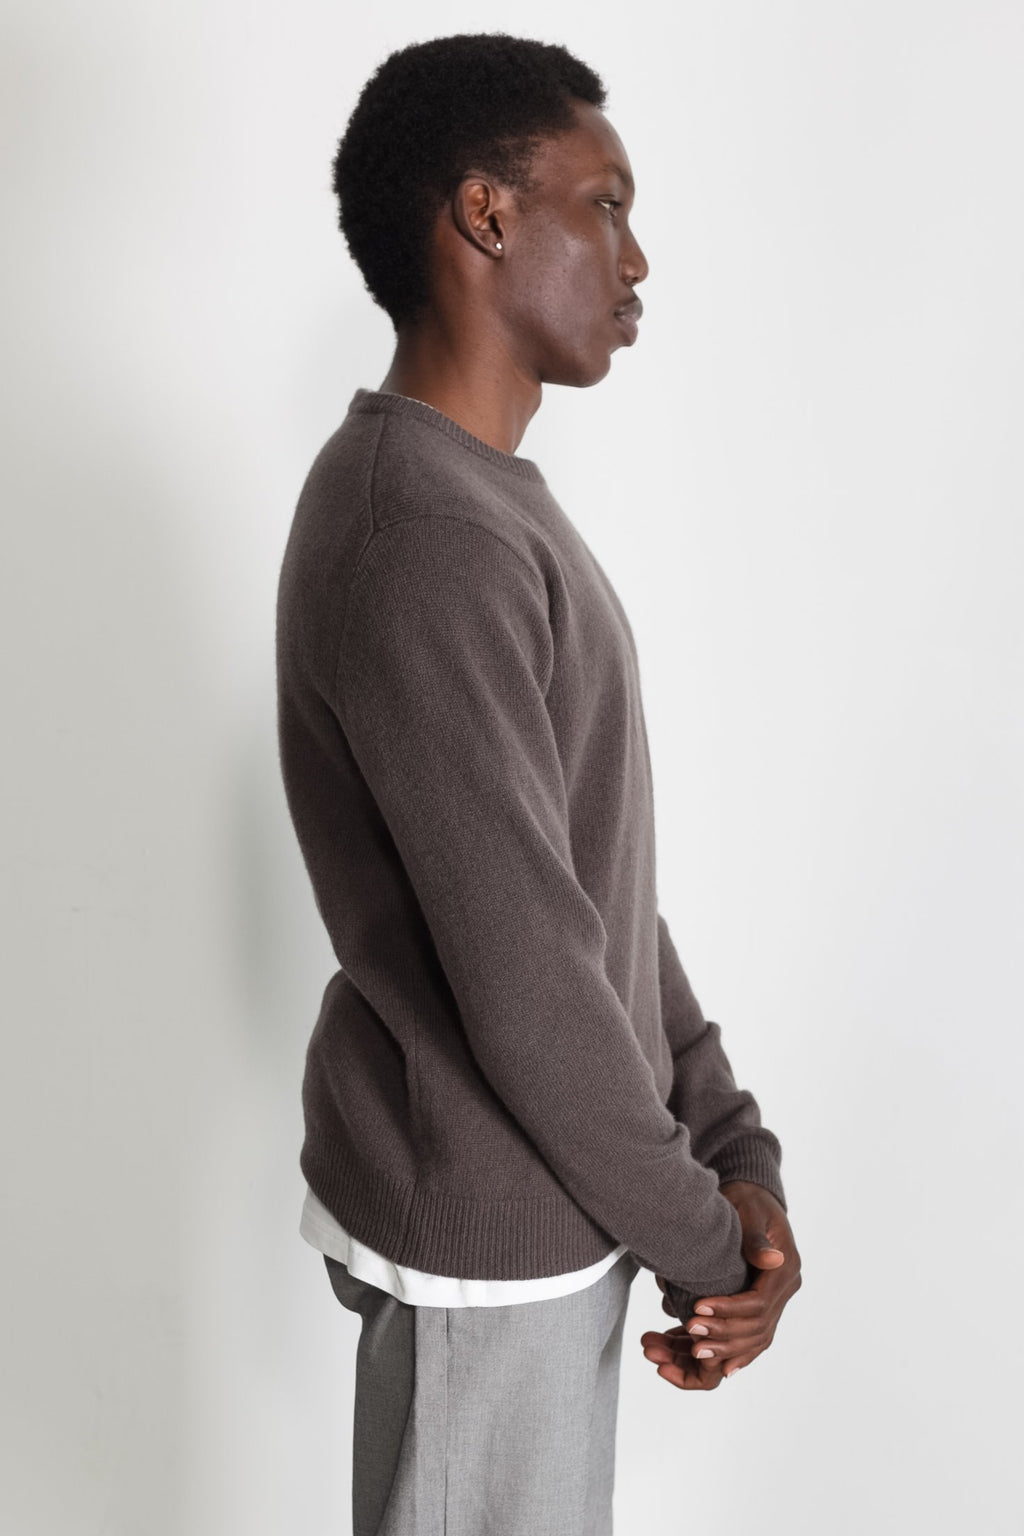 New Wool Crew Neck in Taupe 03